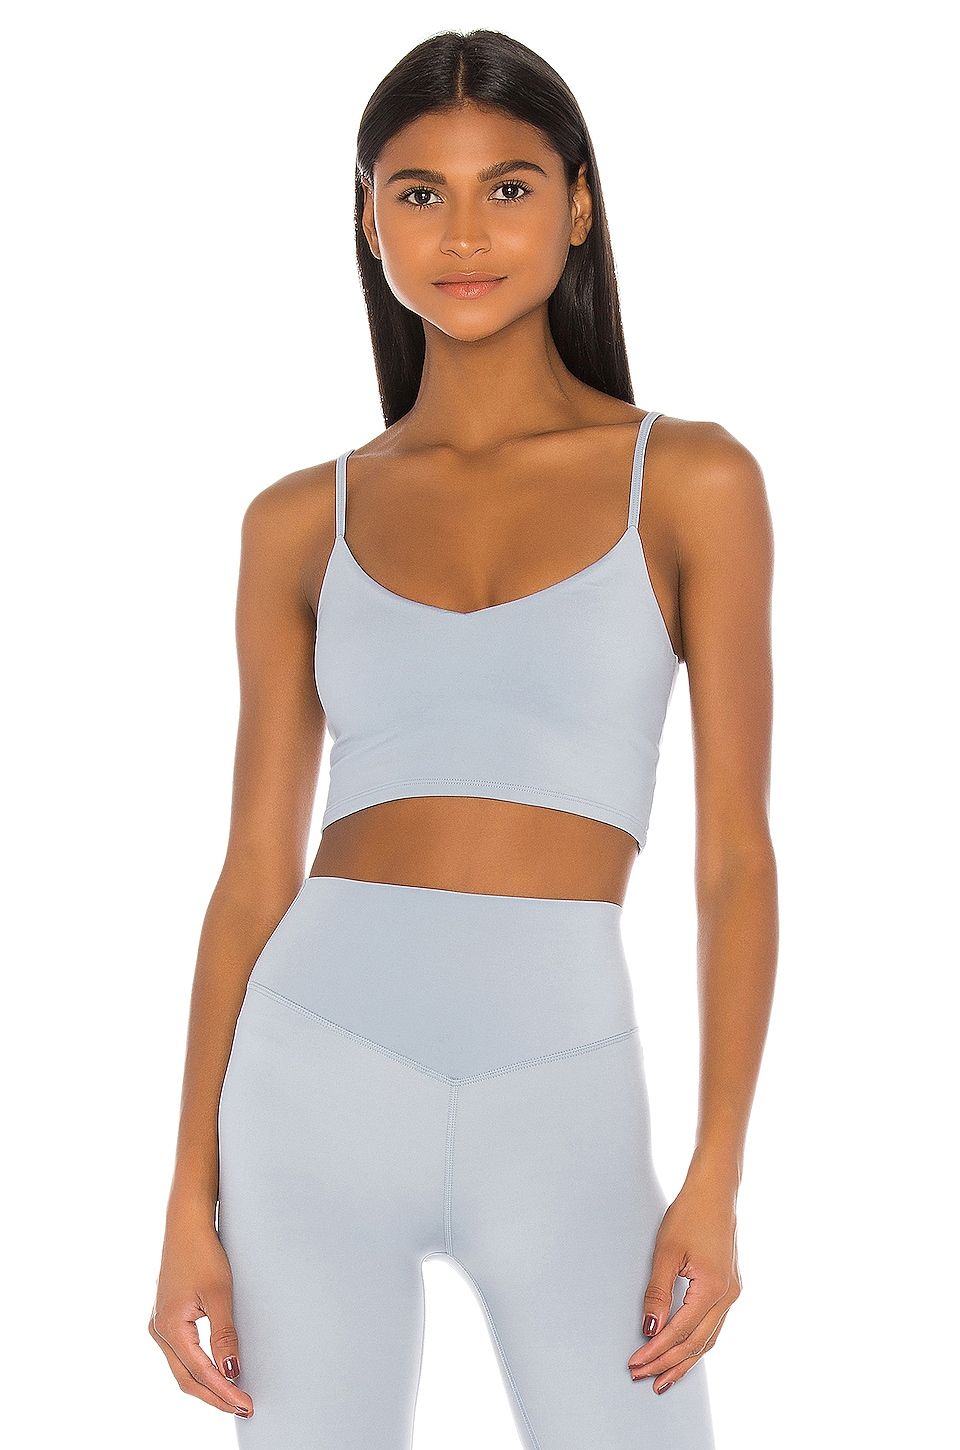 lovewave The Kym Top in Blue Led